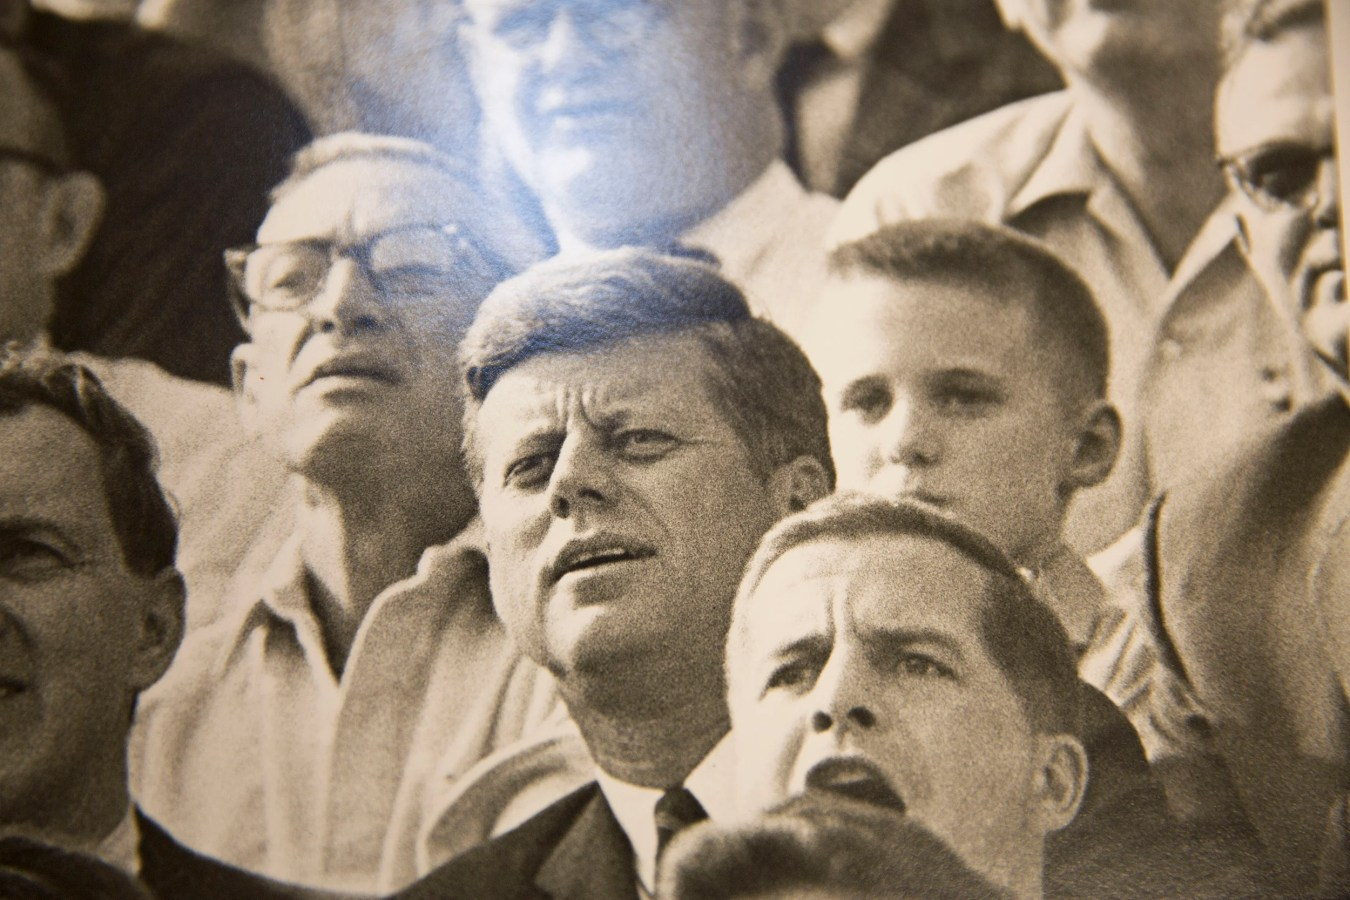 President Kennedy attends a Harvard football game in October 1963.